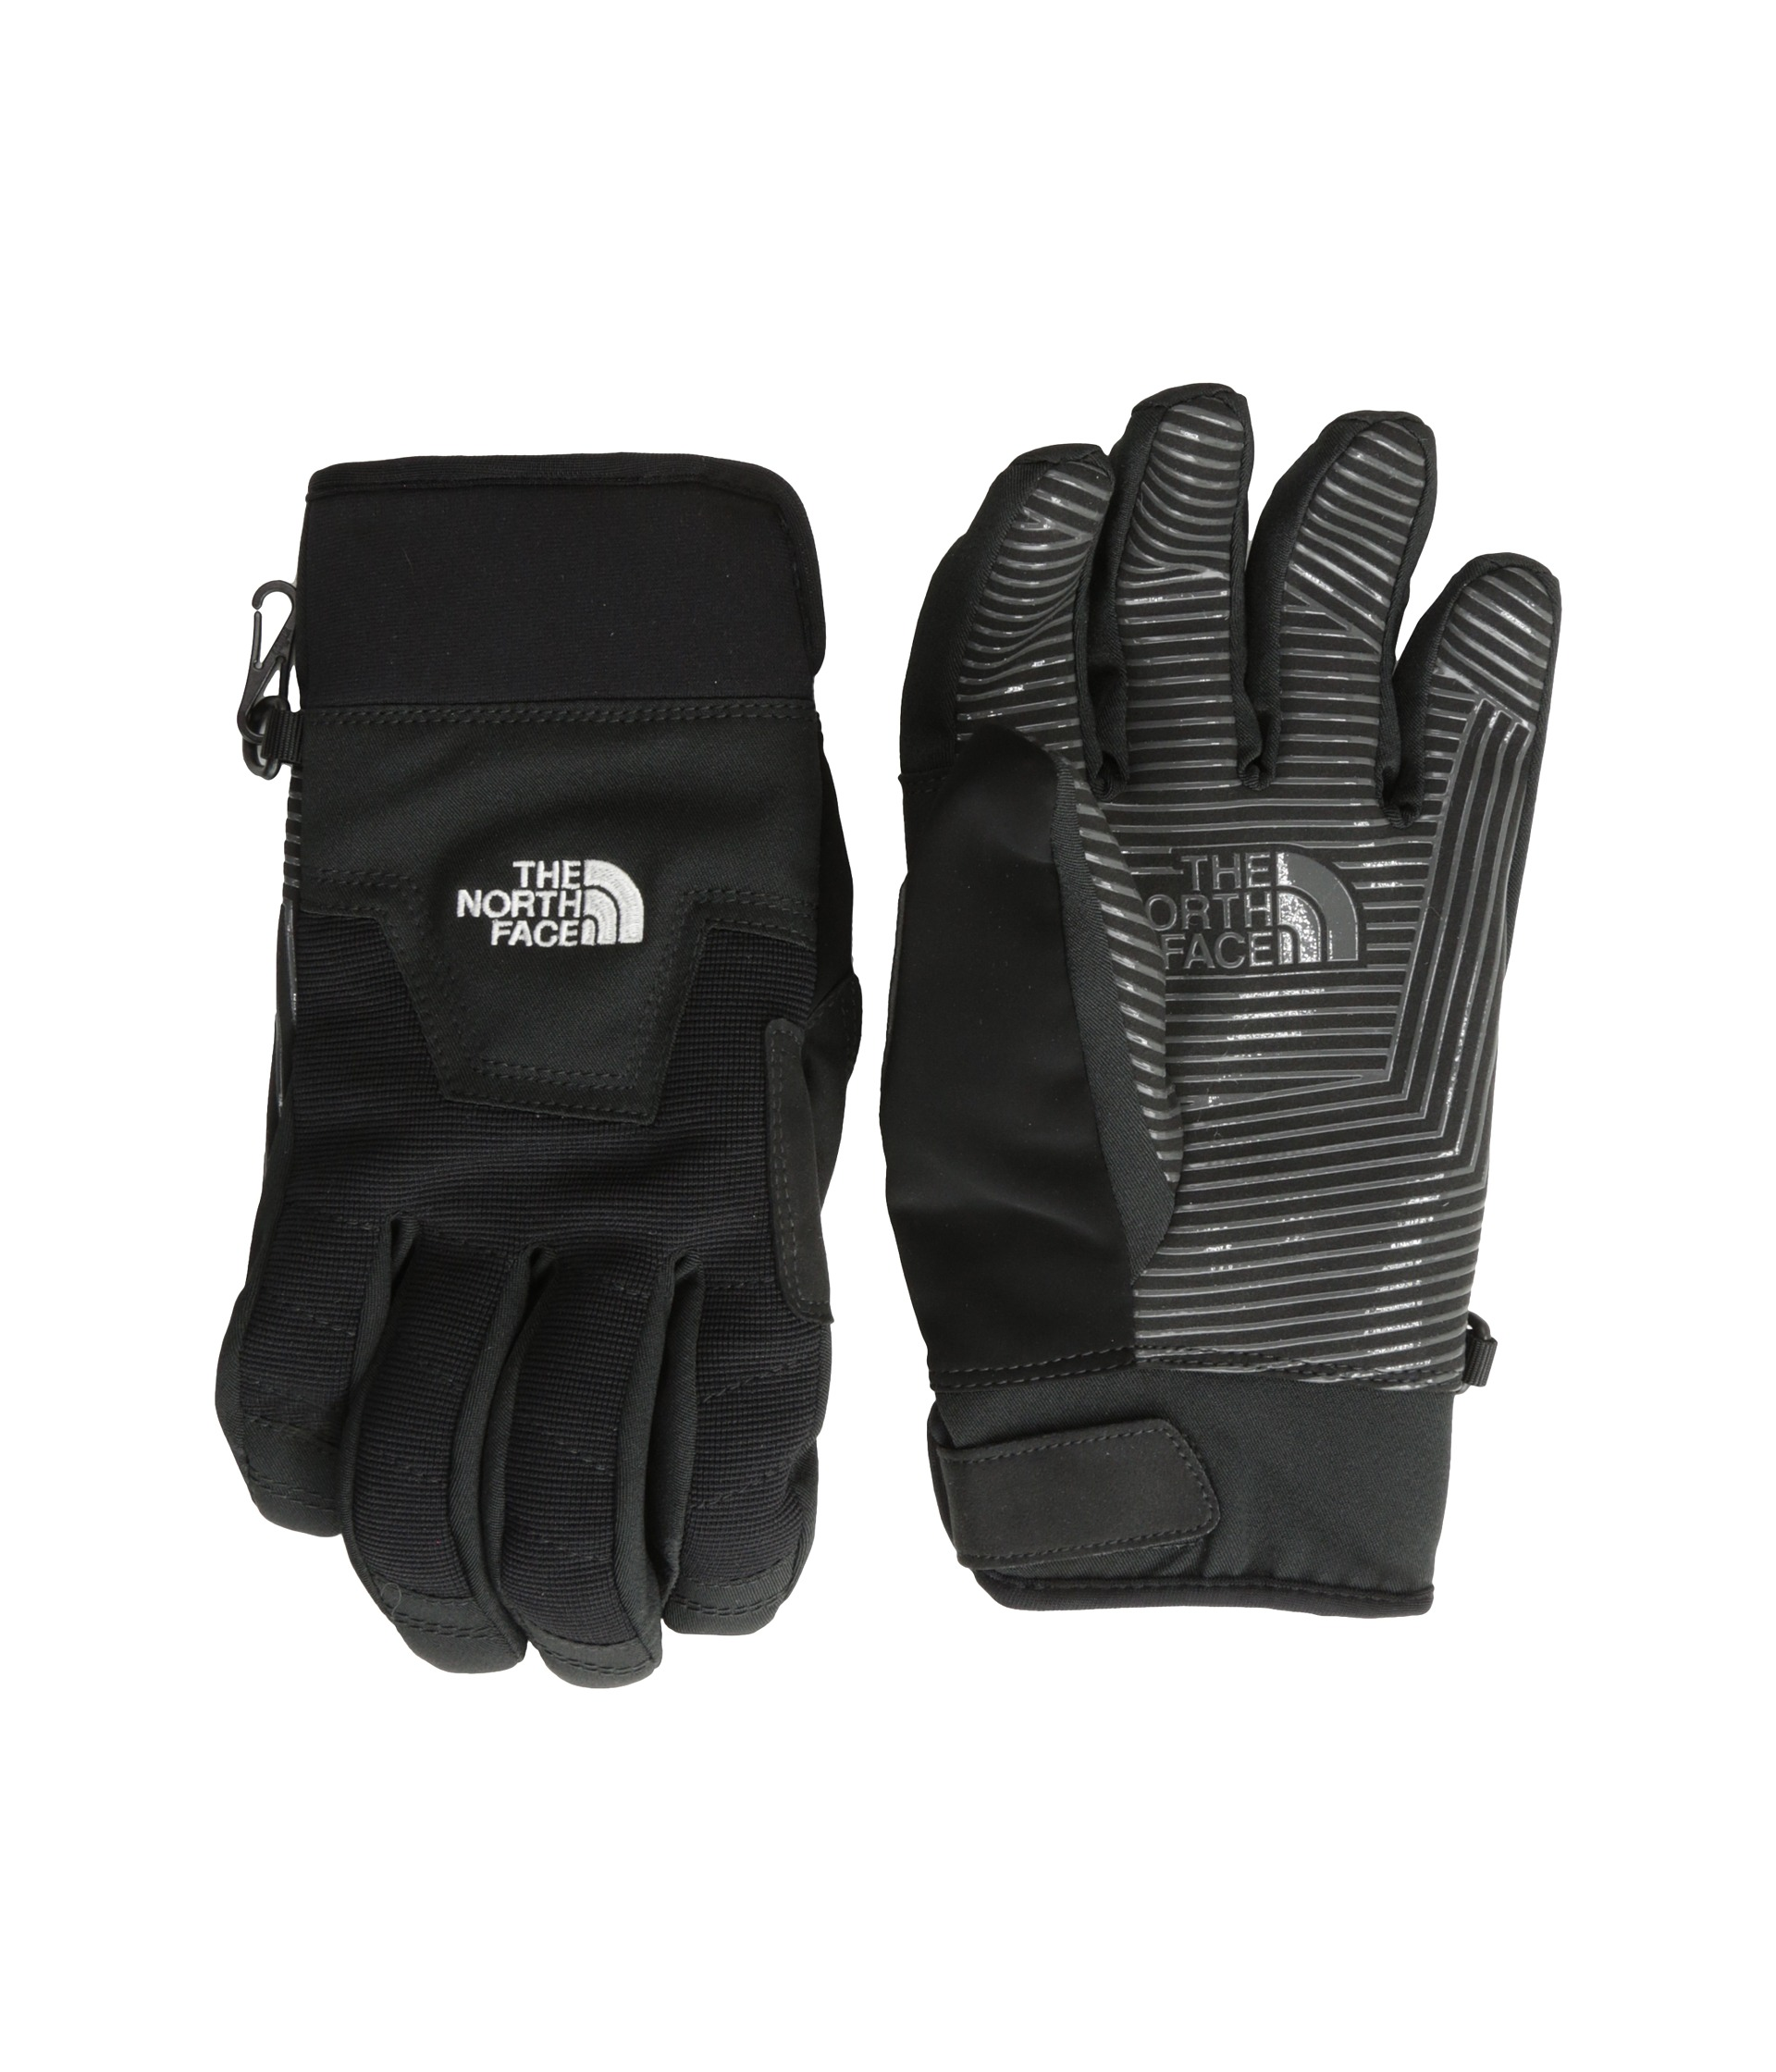 The North Face Crowley Glove at Zappos.com